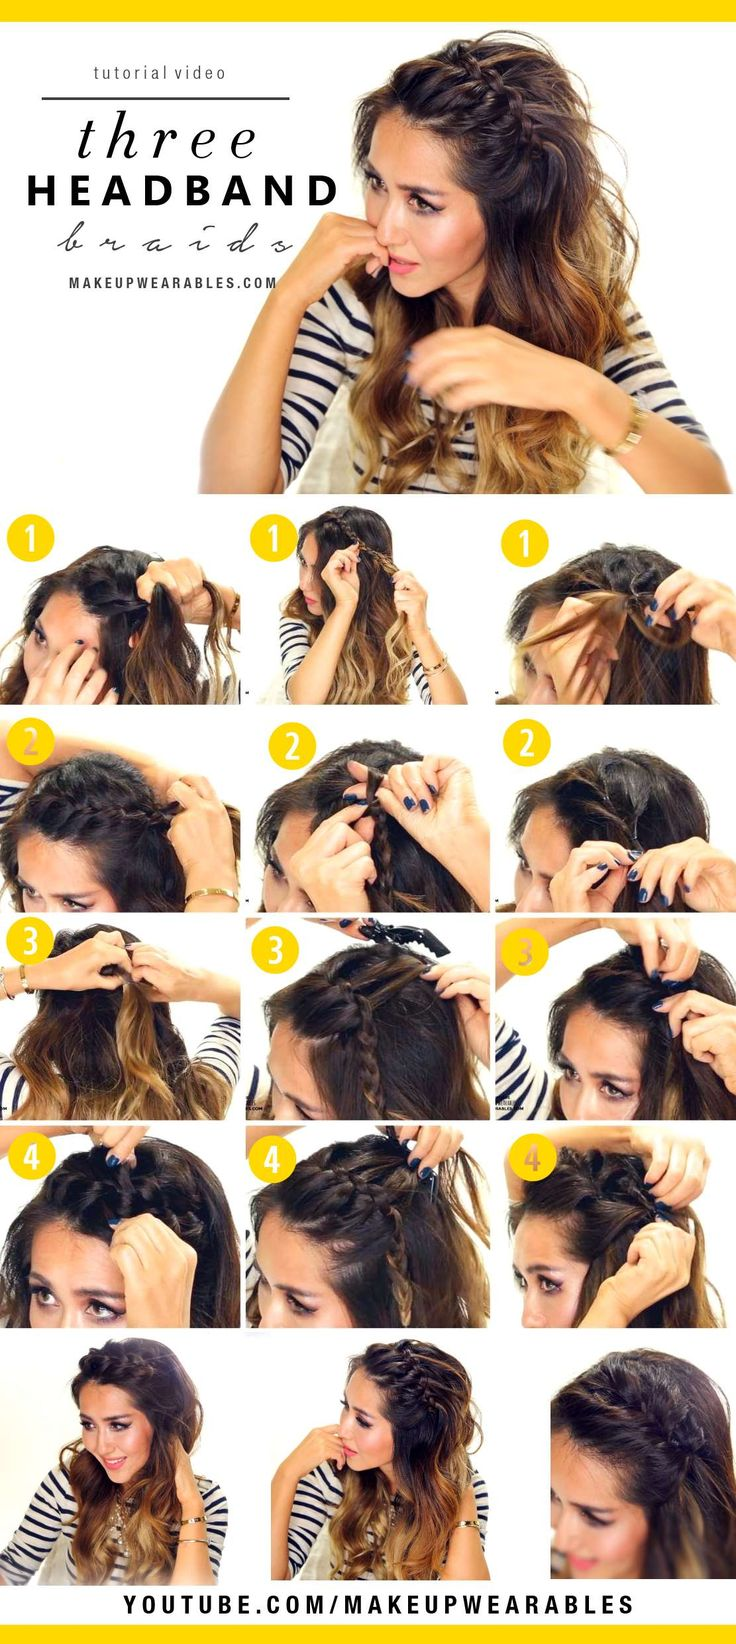 3 Easy Headband Braids – Cute half-up hairstyles for everyday!